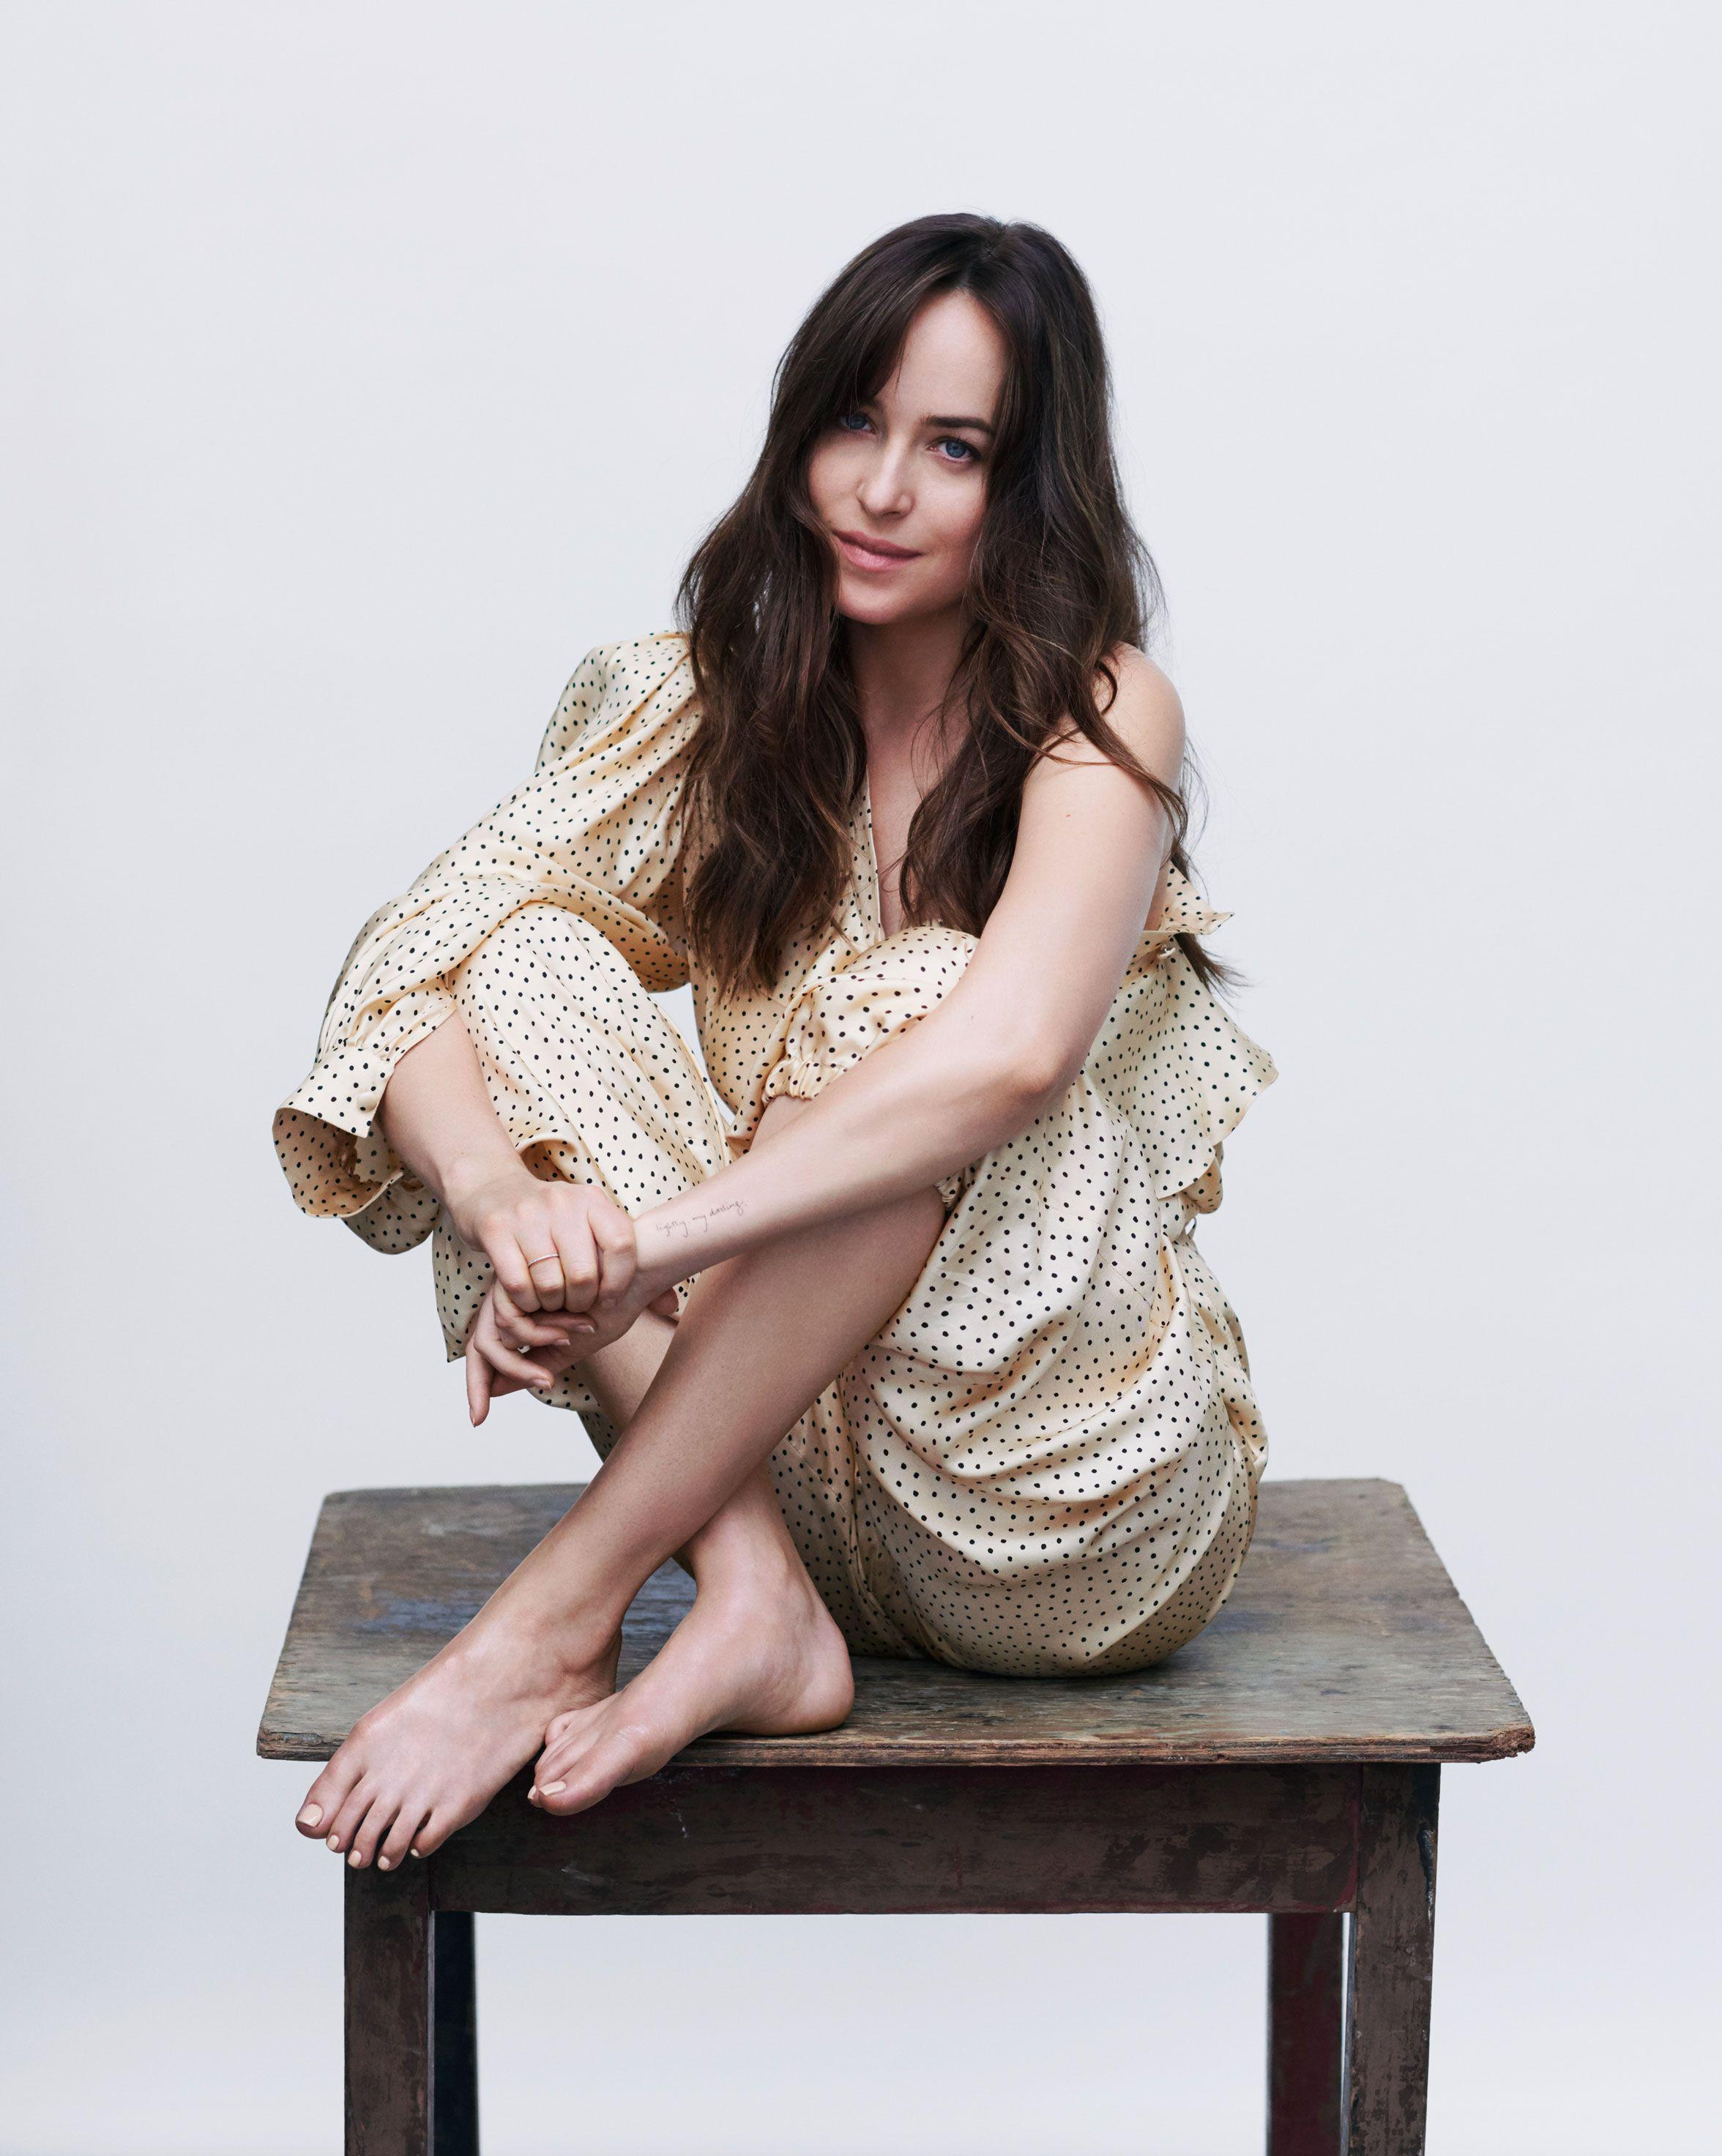 dakota Johnson sitting on a table - Dakota Johnson Net Worth, Movies, Family, Boyfriend, Pictures and Wallpapers